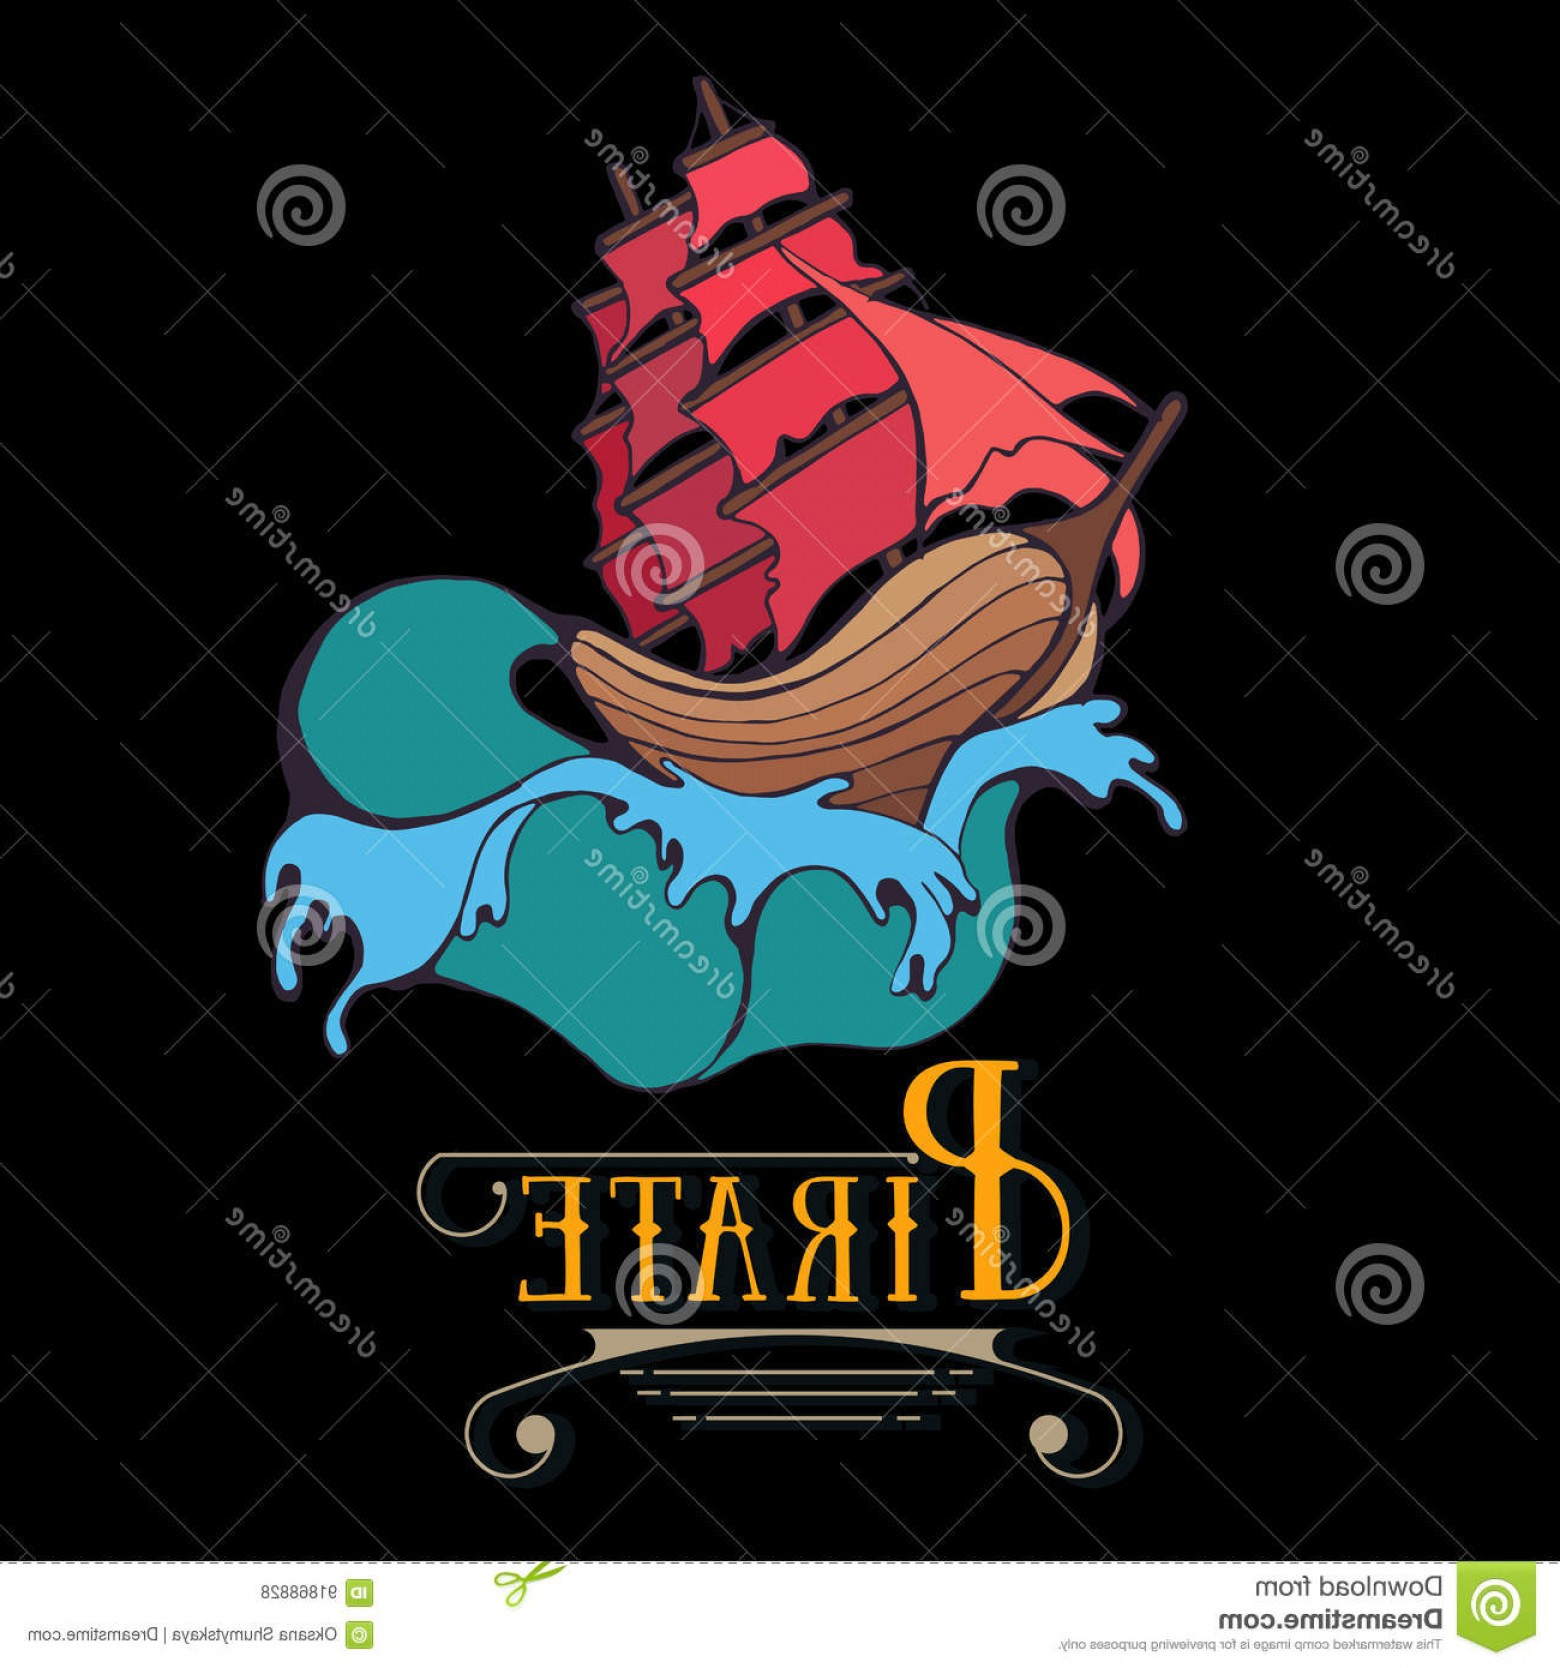 Waves With Cruise Ship Silhouette Vector: Stock Illustration Silhouette Pirate Ship Waves Sail Label Calligraphy Old School Tattoo Graphic Games Frigate Marine Colorful Image